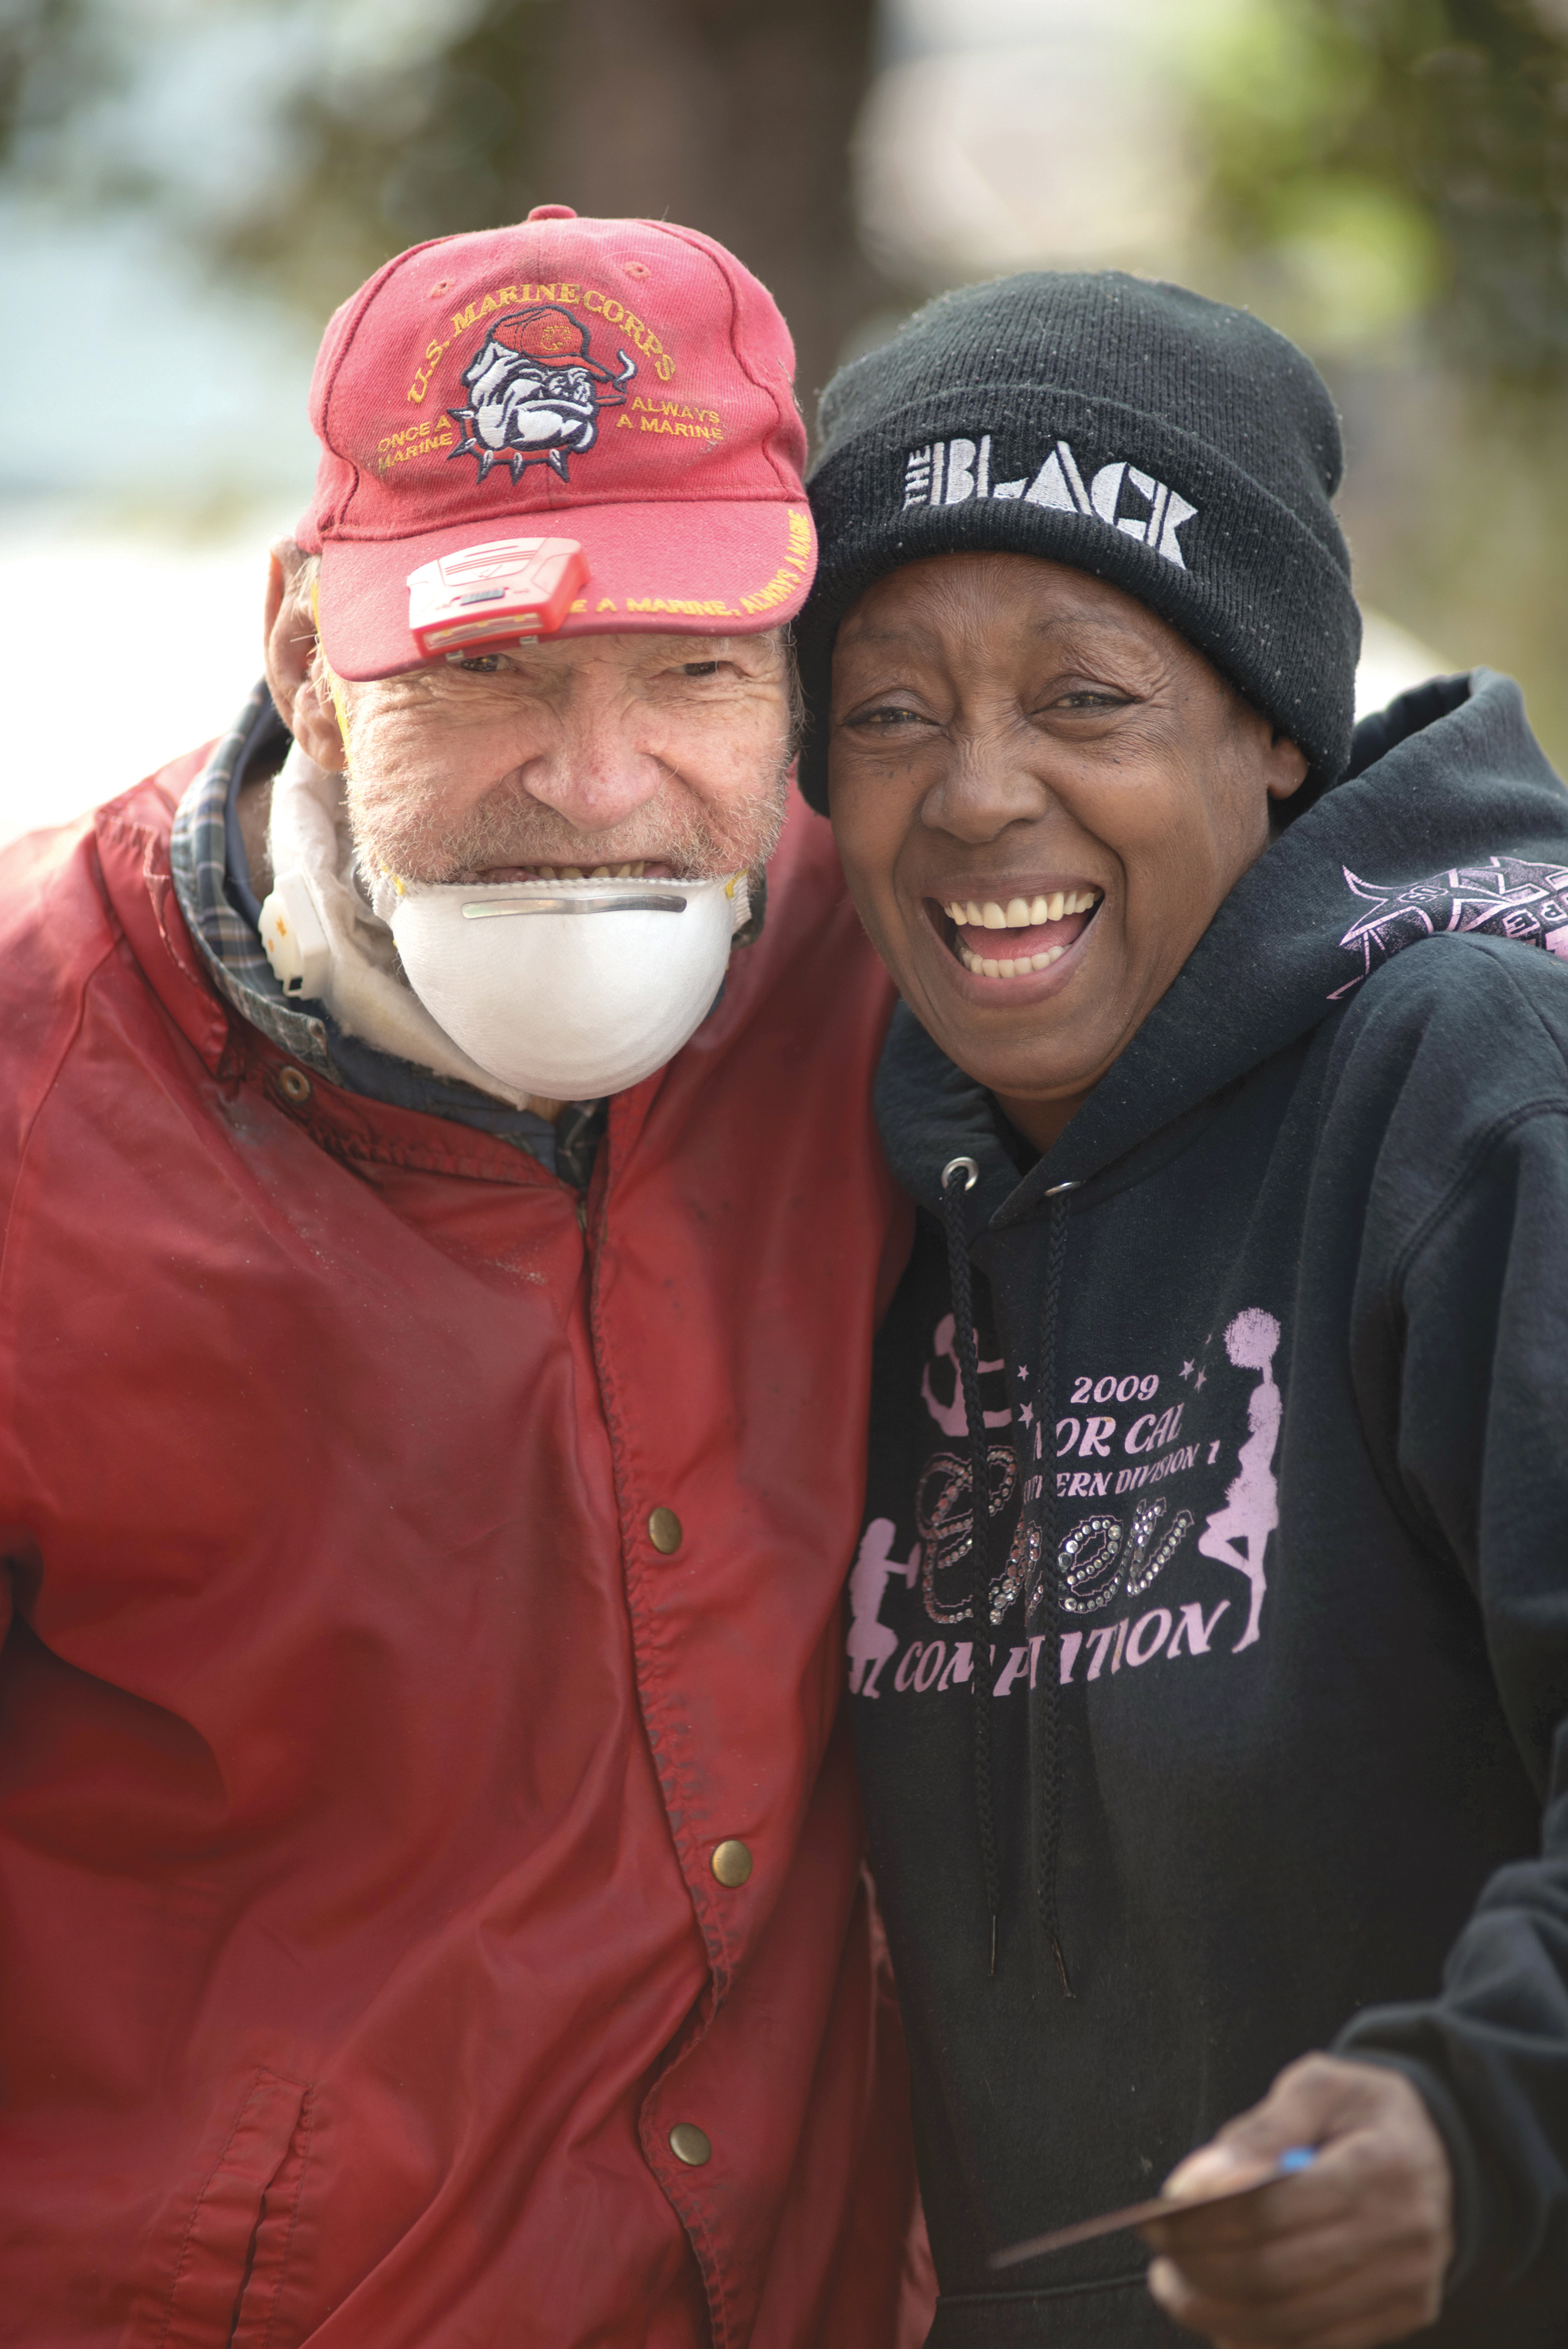 Sharon Cooke from Bethel AME Church in Chico, CA gives a hug to Robert Miller who lost his home in the Camp Fire. For the last three weeks, Northern California residents have come together to assist the thousands of people affected by the wildfire in Butte County, just 120 miles north of Sacramento. (OBSERVER photo by Robert Maryland)